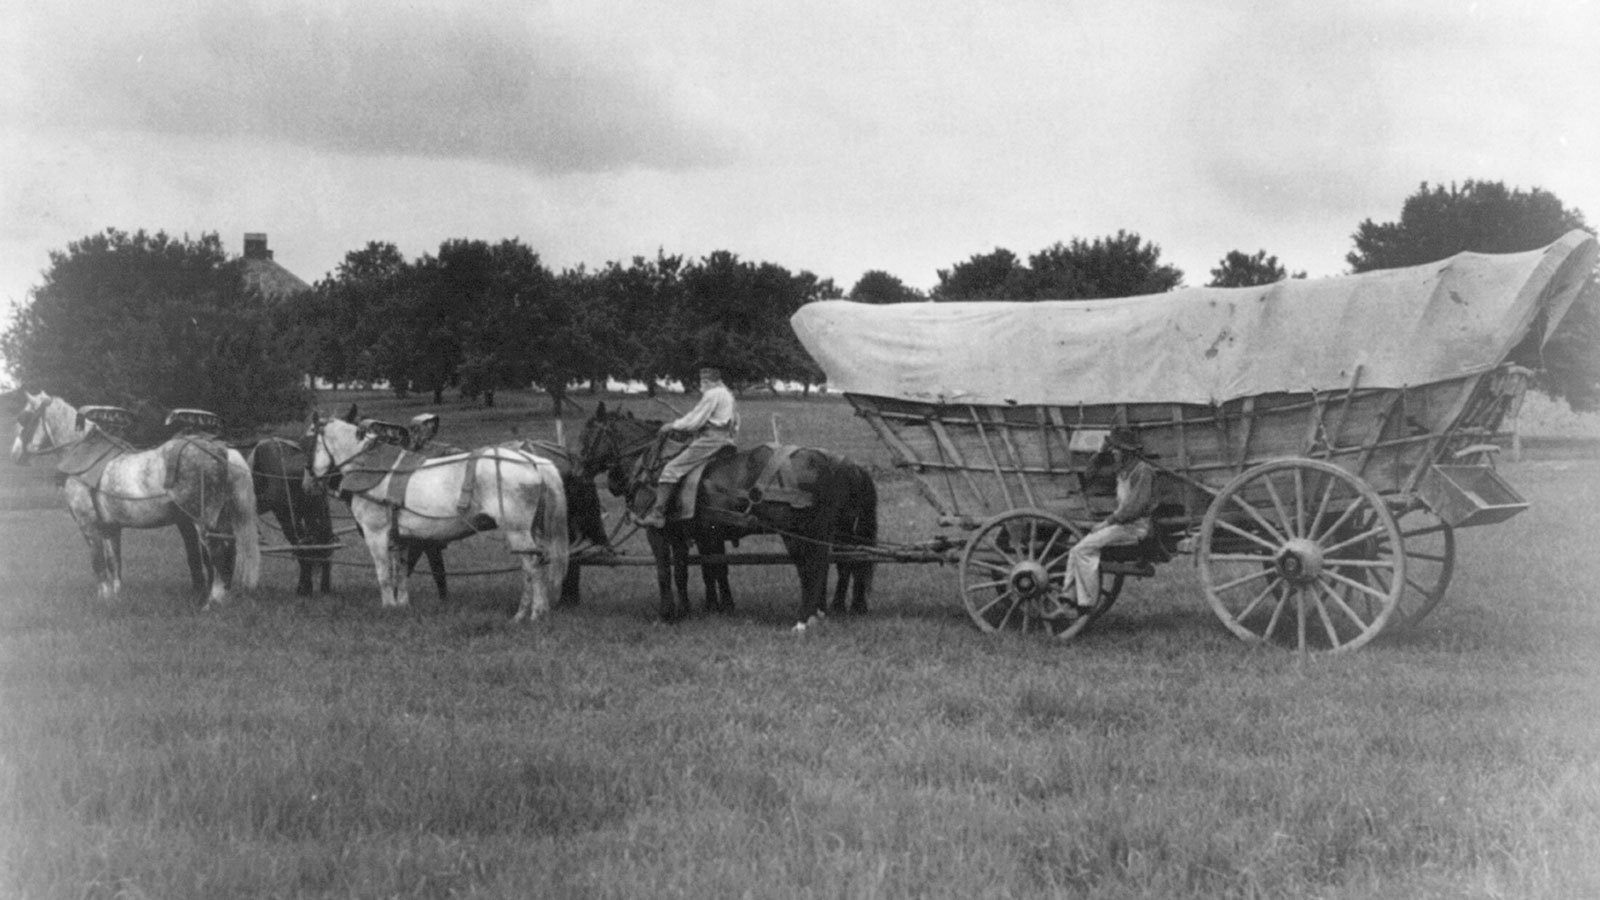 Conestoga wagon was used for carrying freight on the National Pike